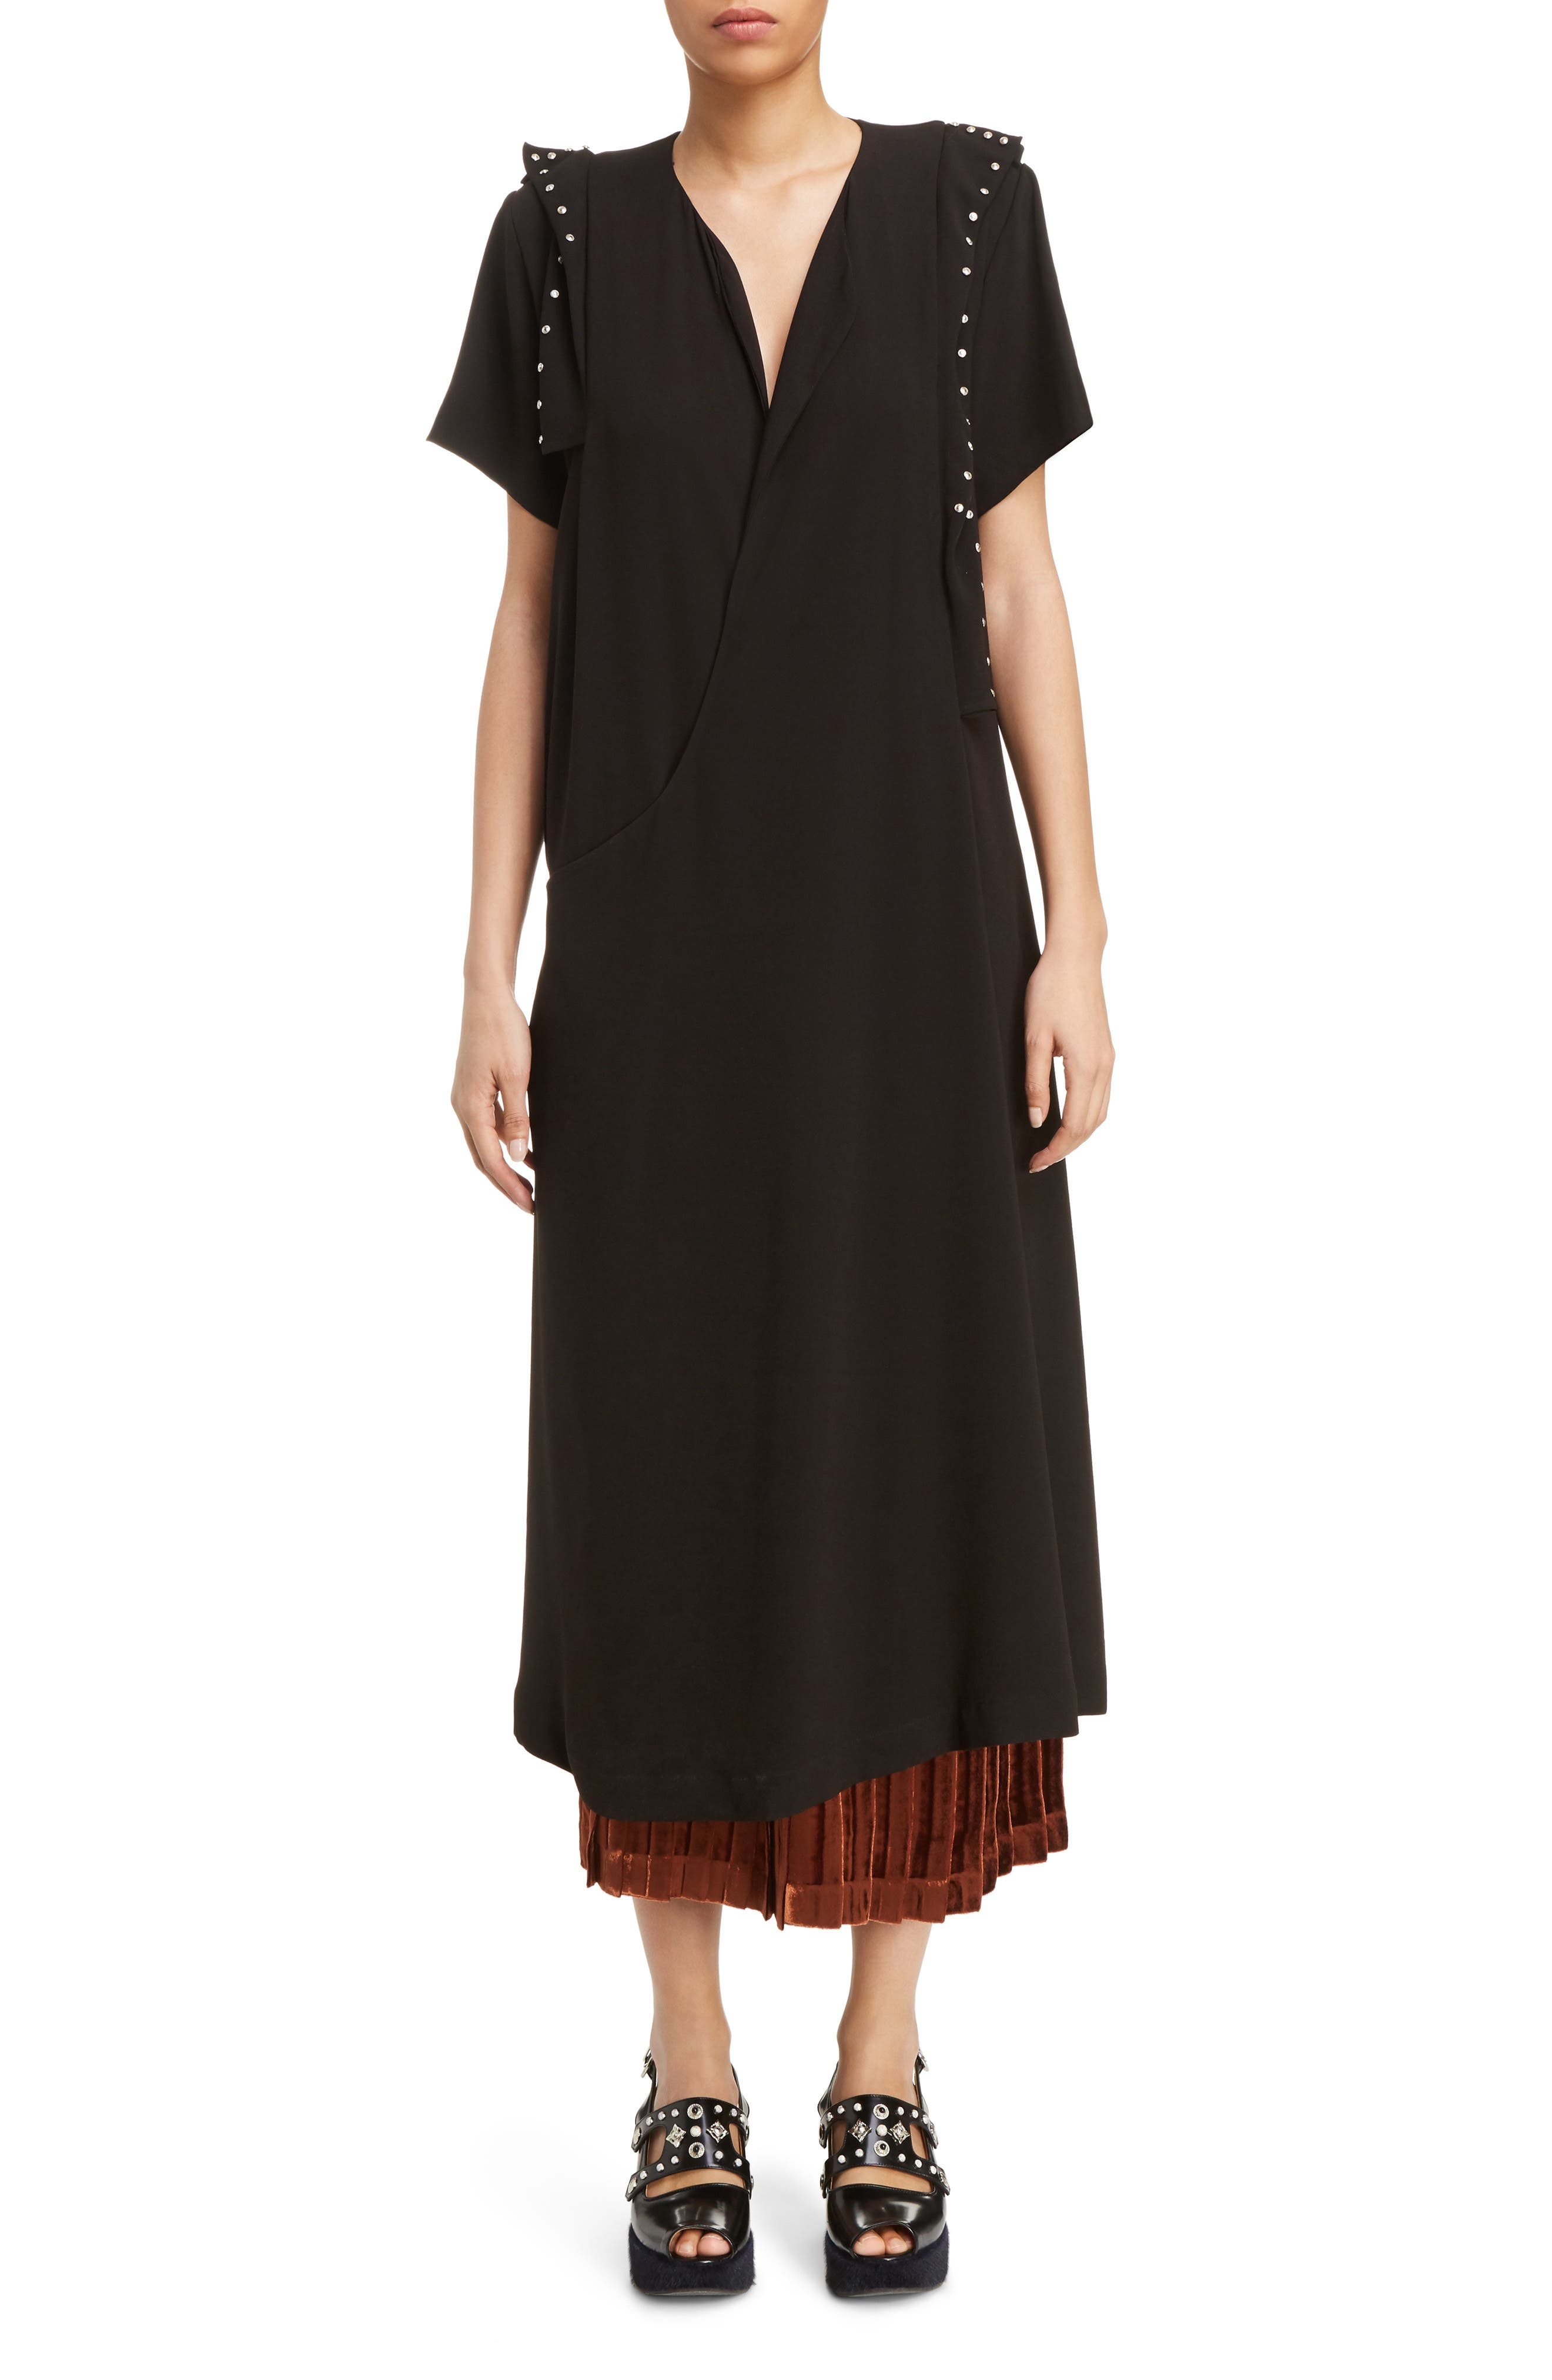 Alternate Image 1 Selected - TOGA Georgette Faux Wrap Dress